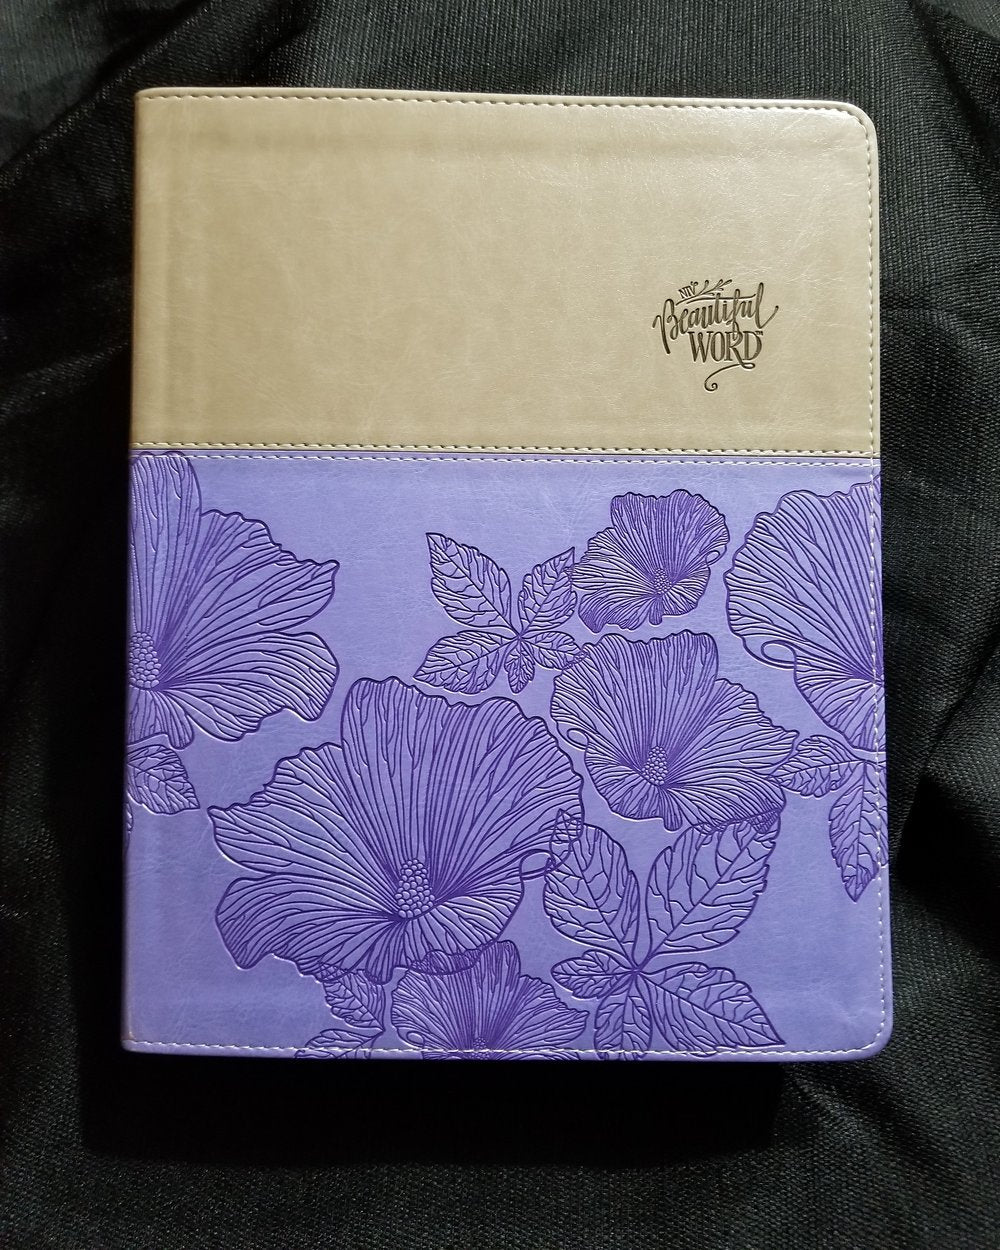 NIV Beautiful Word Coloring Bible - Large Print- LeatherSoft - Purple/Tan